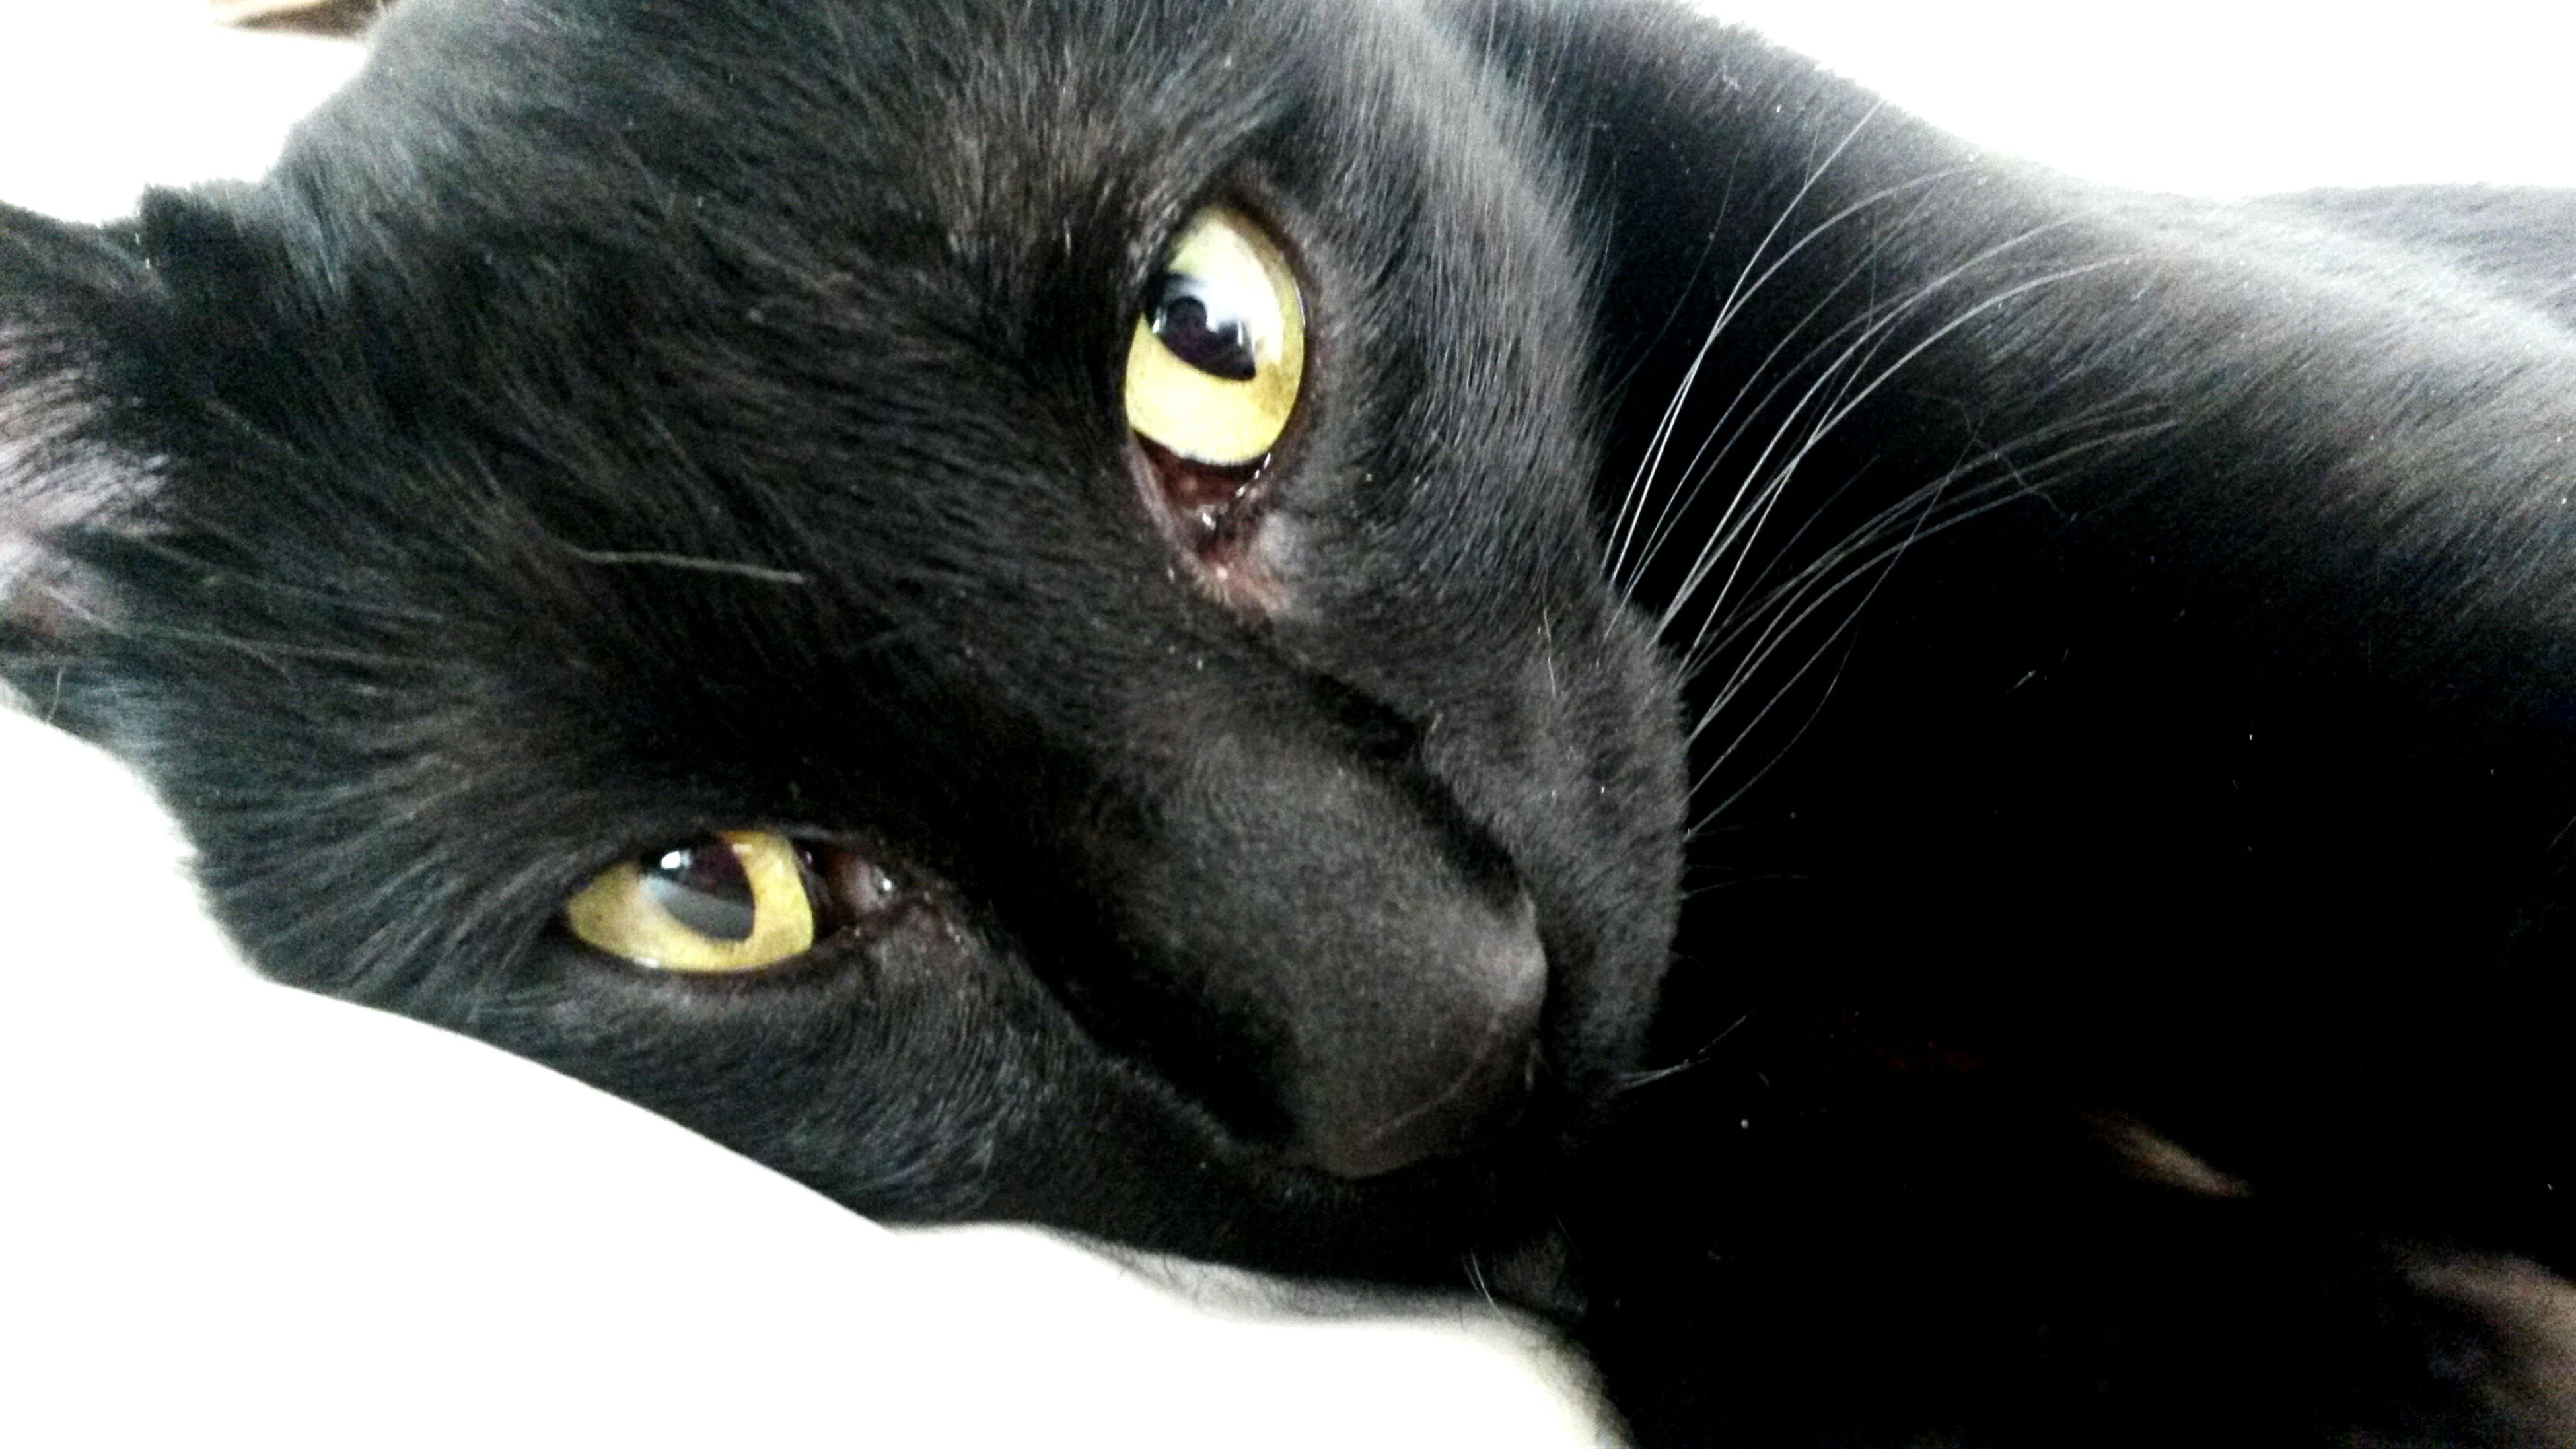 domestic animals, pets, animal themes, one animal, mammal, domestic cat, cat, feline, whisker, animal head, close-up, looking at camera, portrait, indoors, animal eye, black color, animal body part, staring, alertness, relaxation